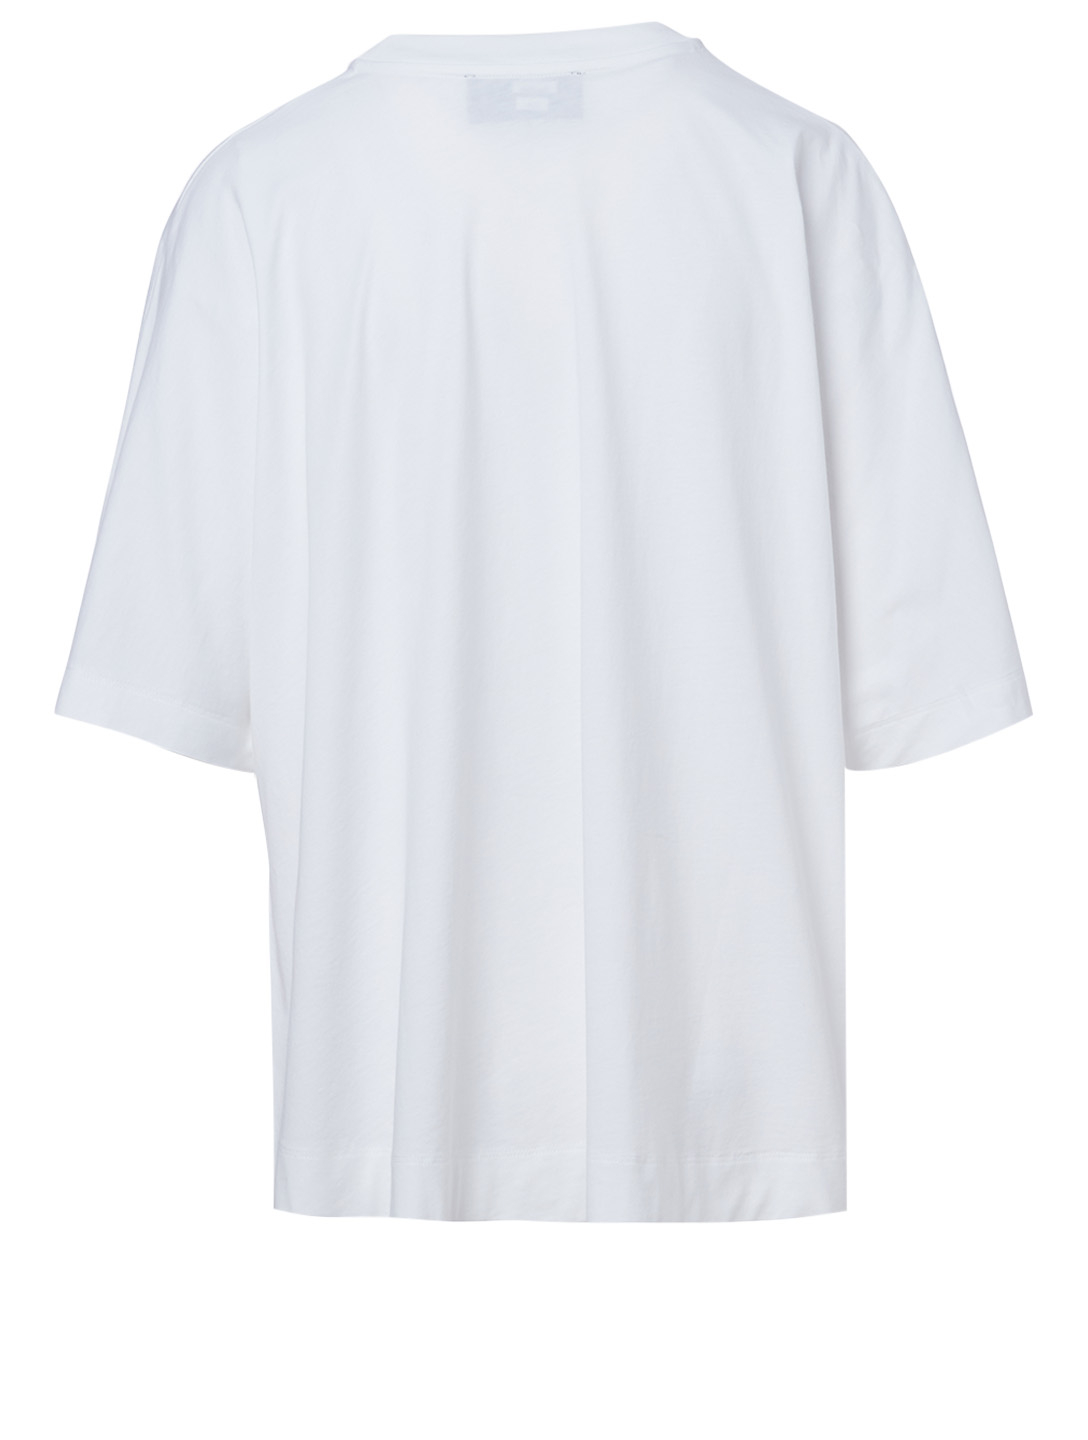 SIMONE ROCHA Cotton T-Shirt In Flower Print Women's White